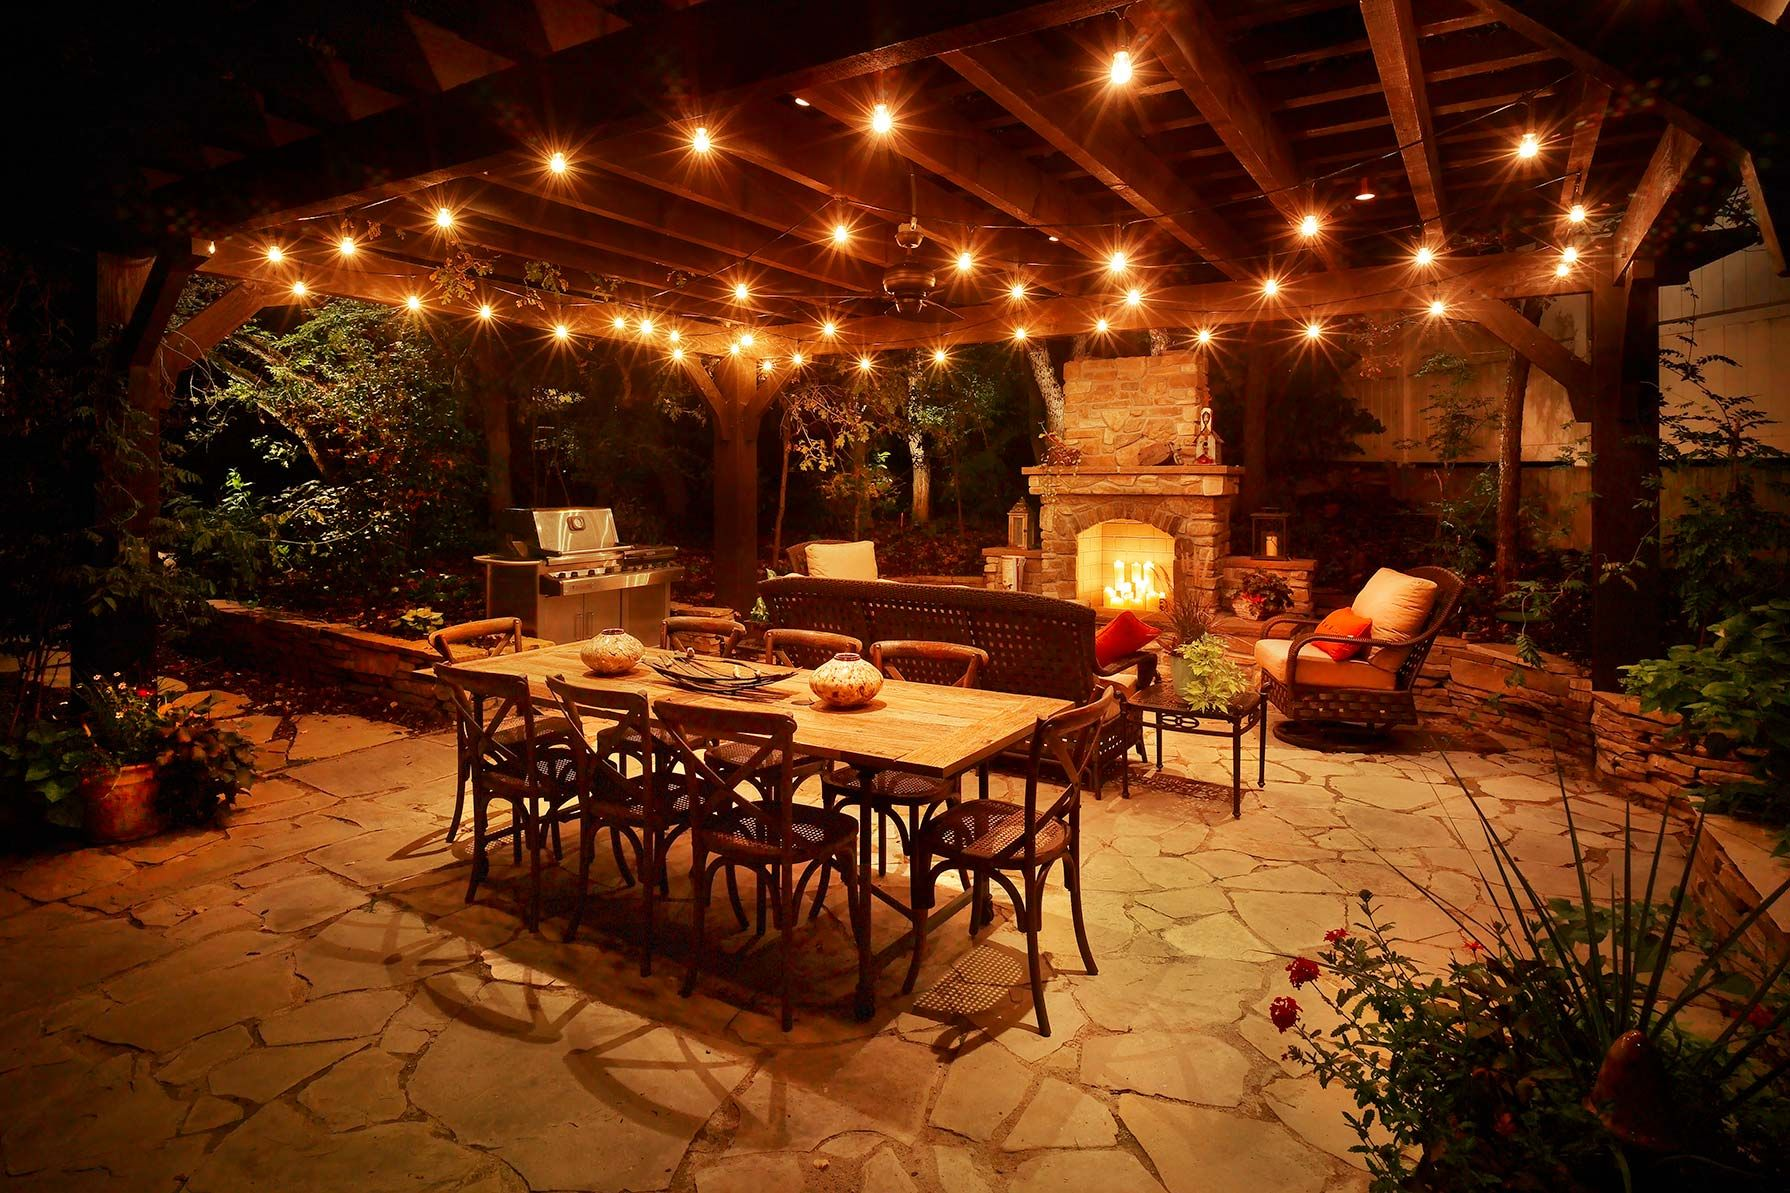 patio lighting fixtures. contemporary patio patio lights  festoon lighting composed with down and wash  lighting let  in patio lighting fixtures g